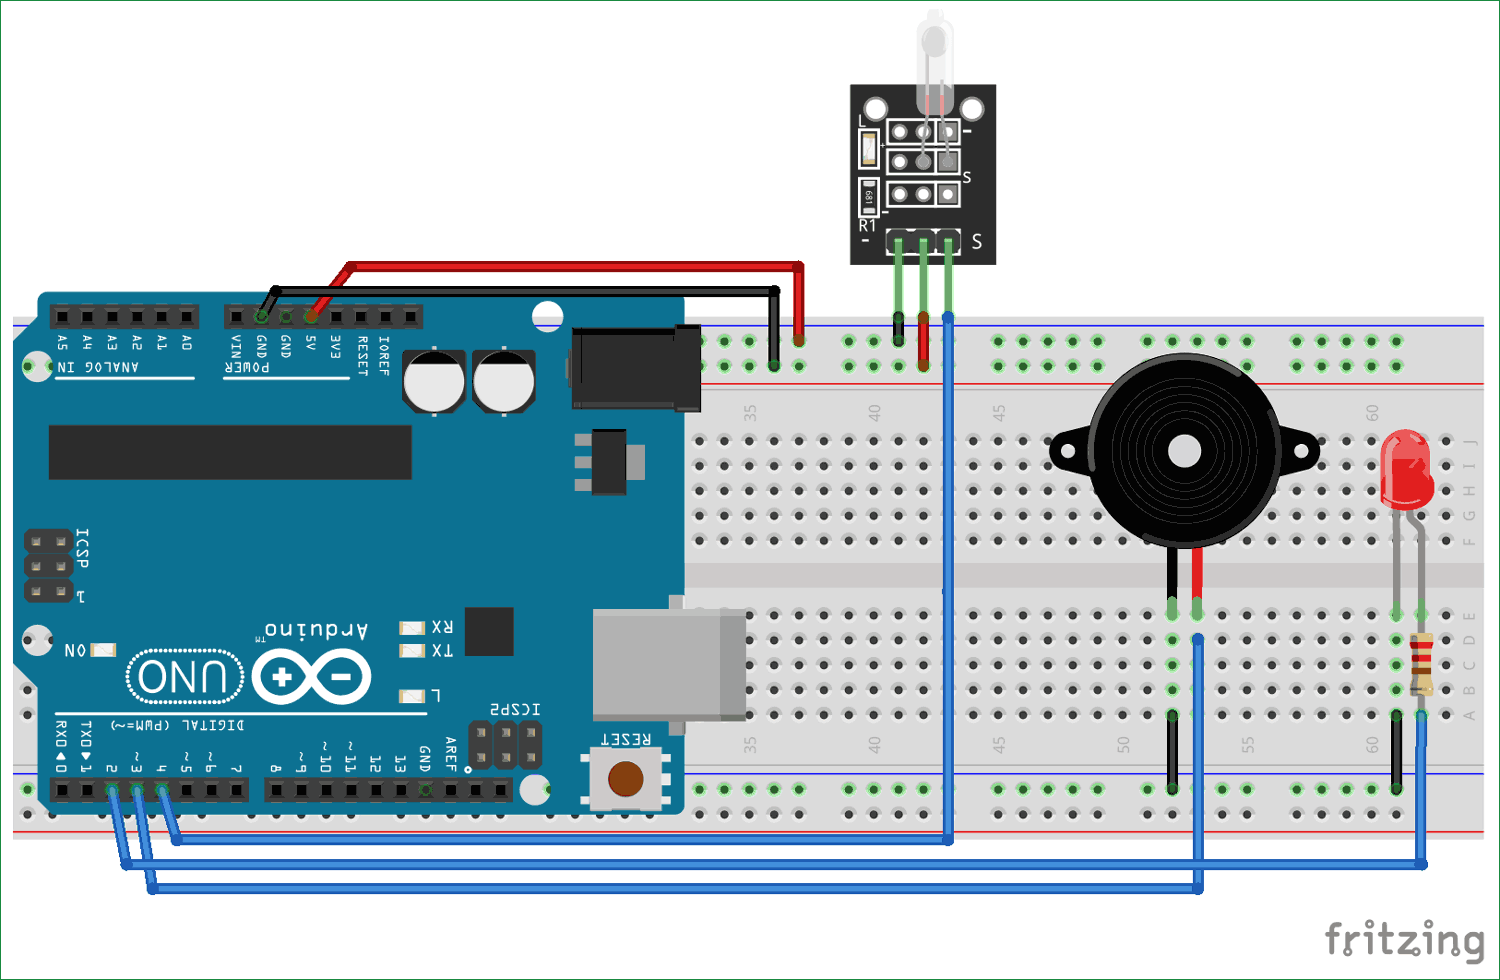 Tilt Sensor Interfacing With Arduino Uno Inclinometer Wiring Diagram Circuit